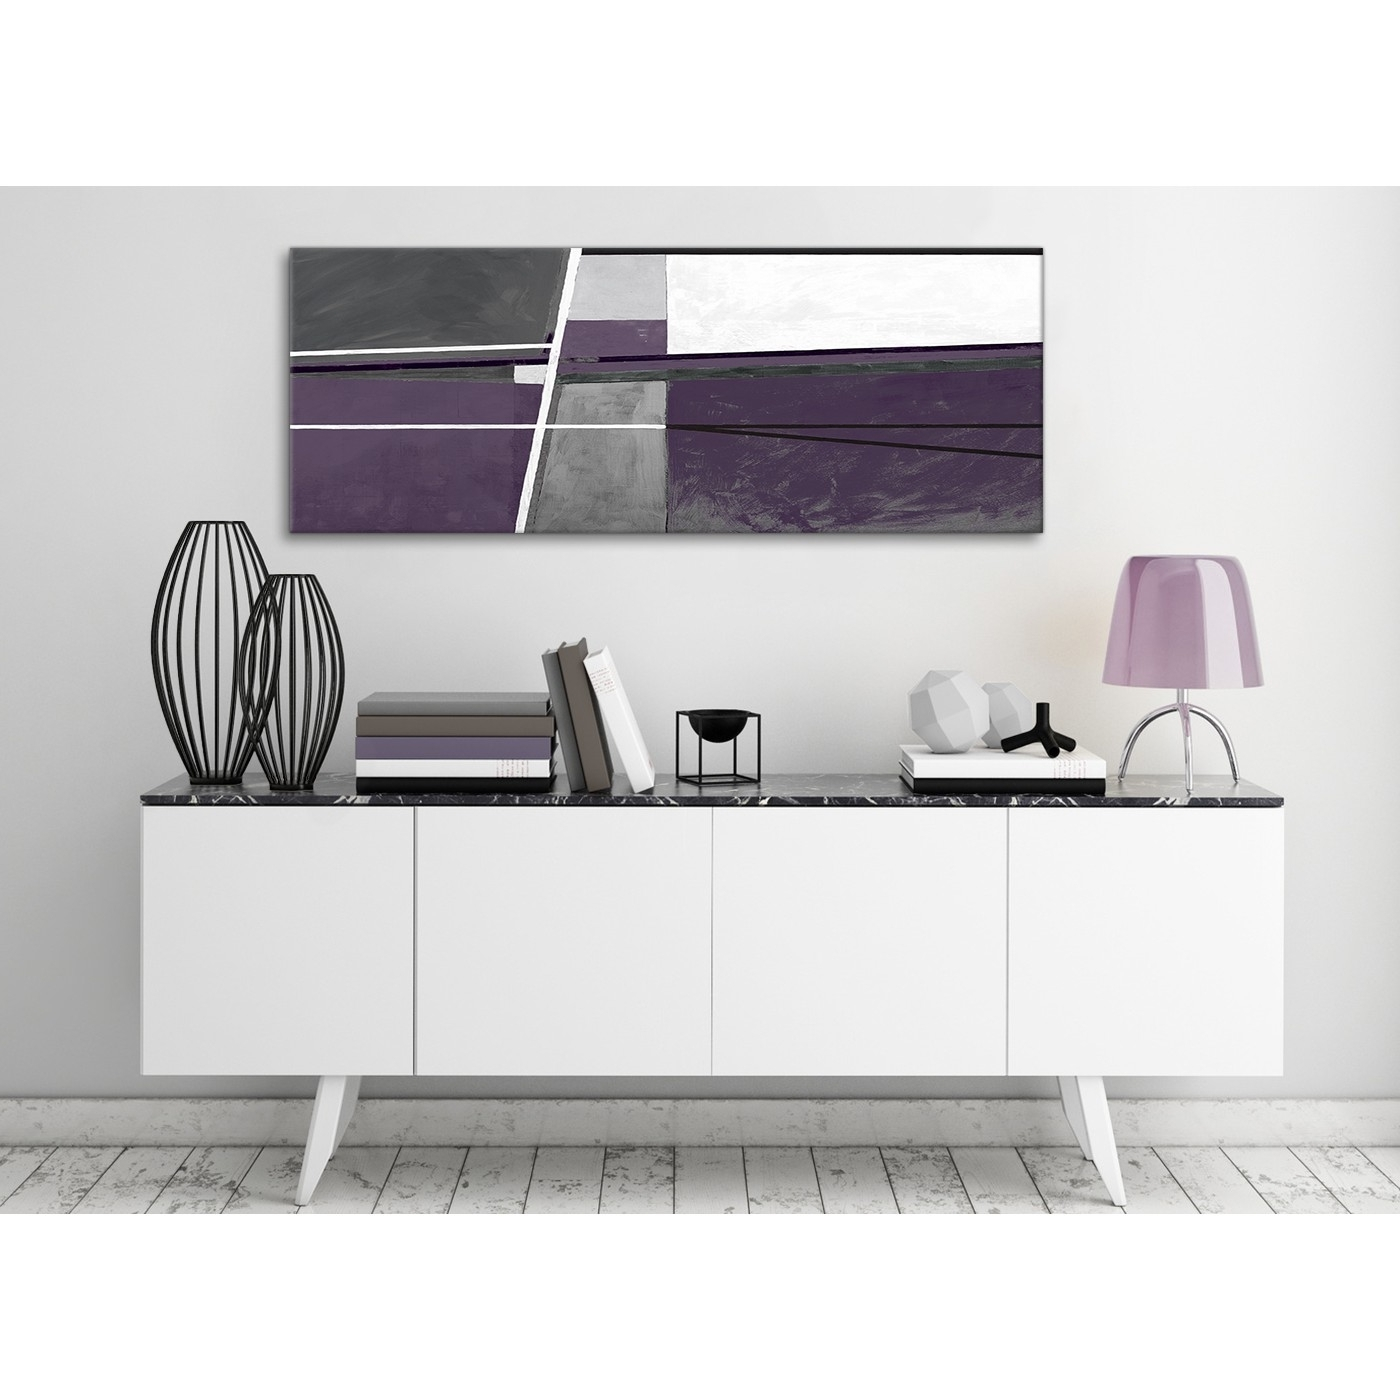 2018 Aubergine Grey Painting Bedroom Canvas Wall Art Accessories With Aubergine Wall Art (View 1 of 15)